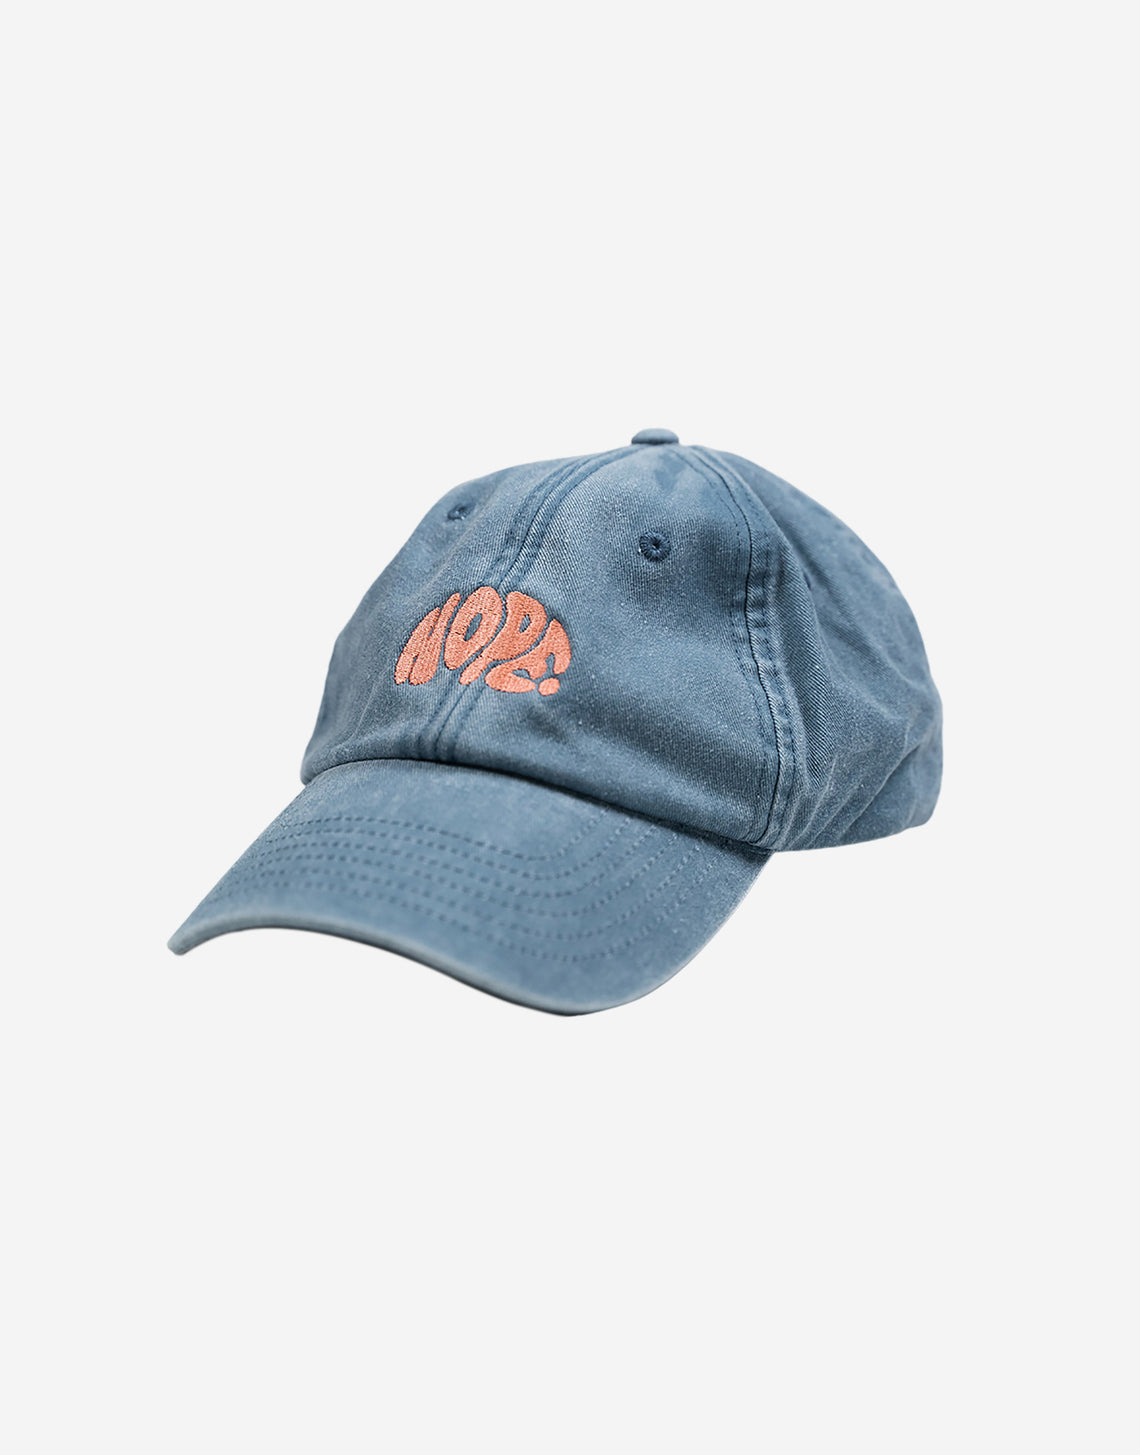 Blue Washed Hope Dad Cap - OutsideIn